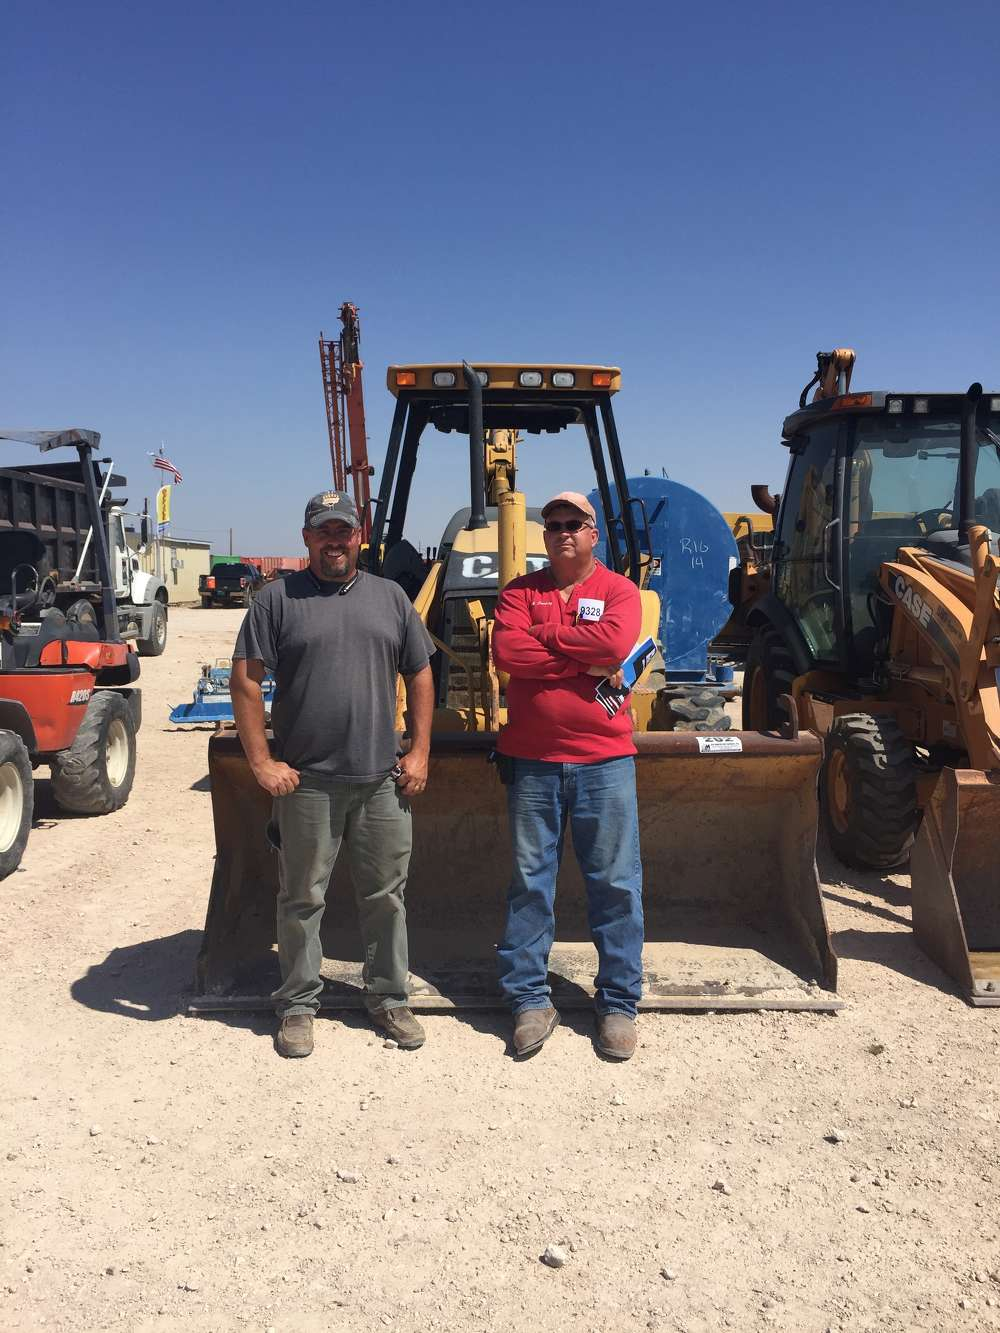 These gentlemen were inspecting a 2005 Caterpillar 420D loader backhoe in line for the Stanton, Texas, auction.